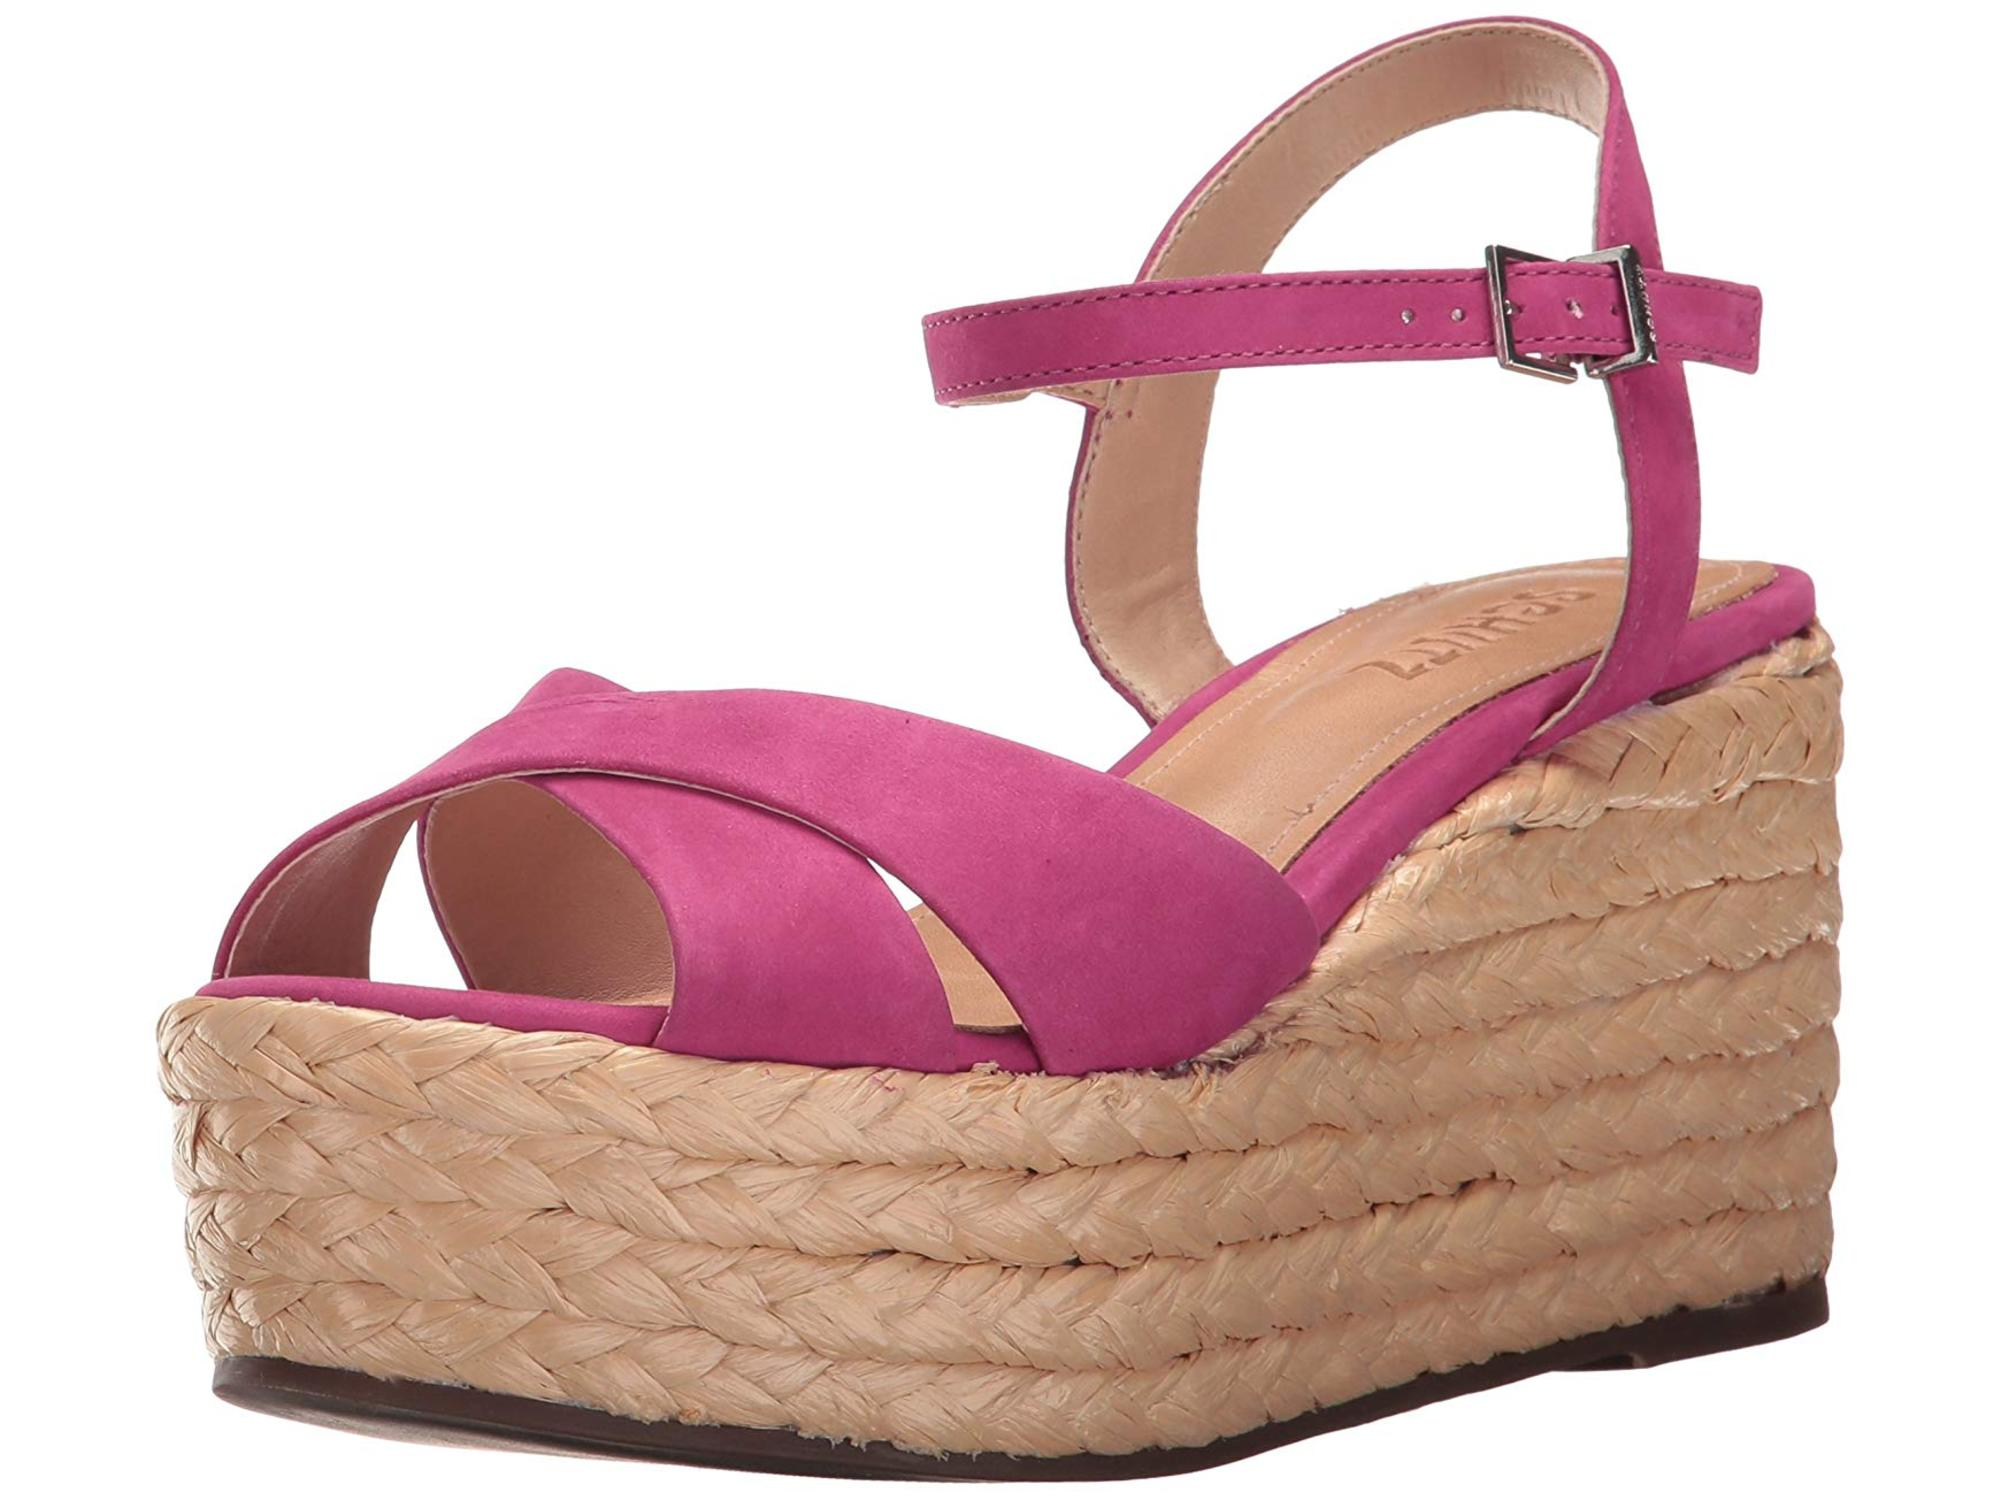 bf13ae96f76 Schutz Womens Keisi Leather Open Toe Casual Platform Sandals